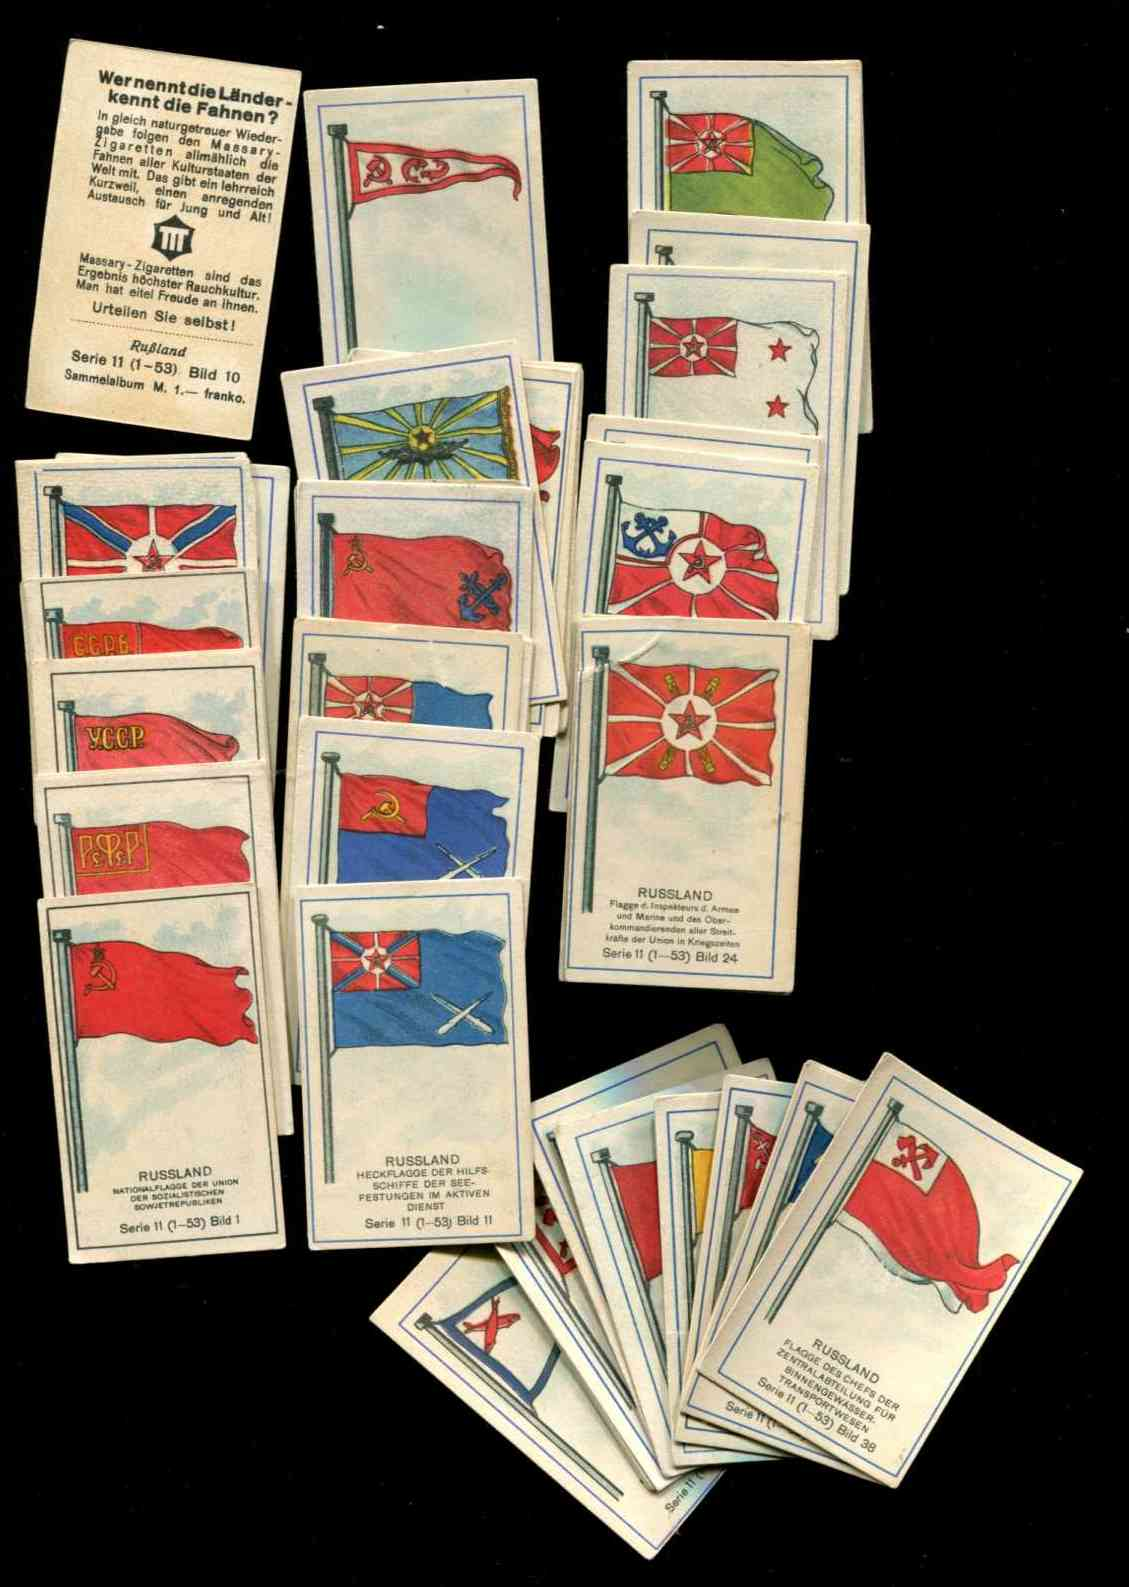 1929 'Wer nennt die Lander' RUSSIAN FLAG CARDS  - NEAR SET (48/53) n cards value